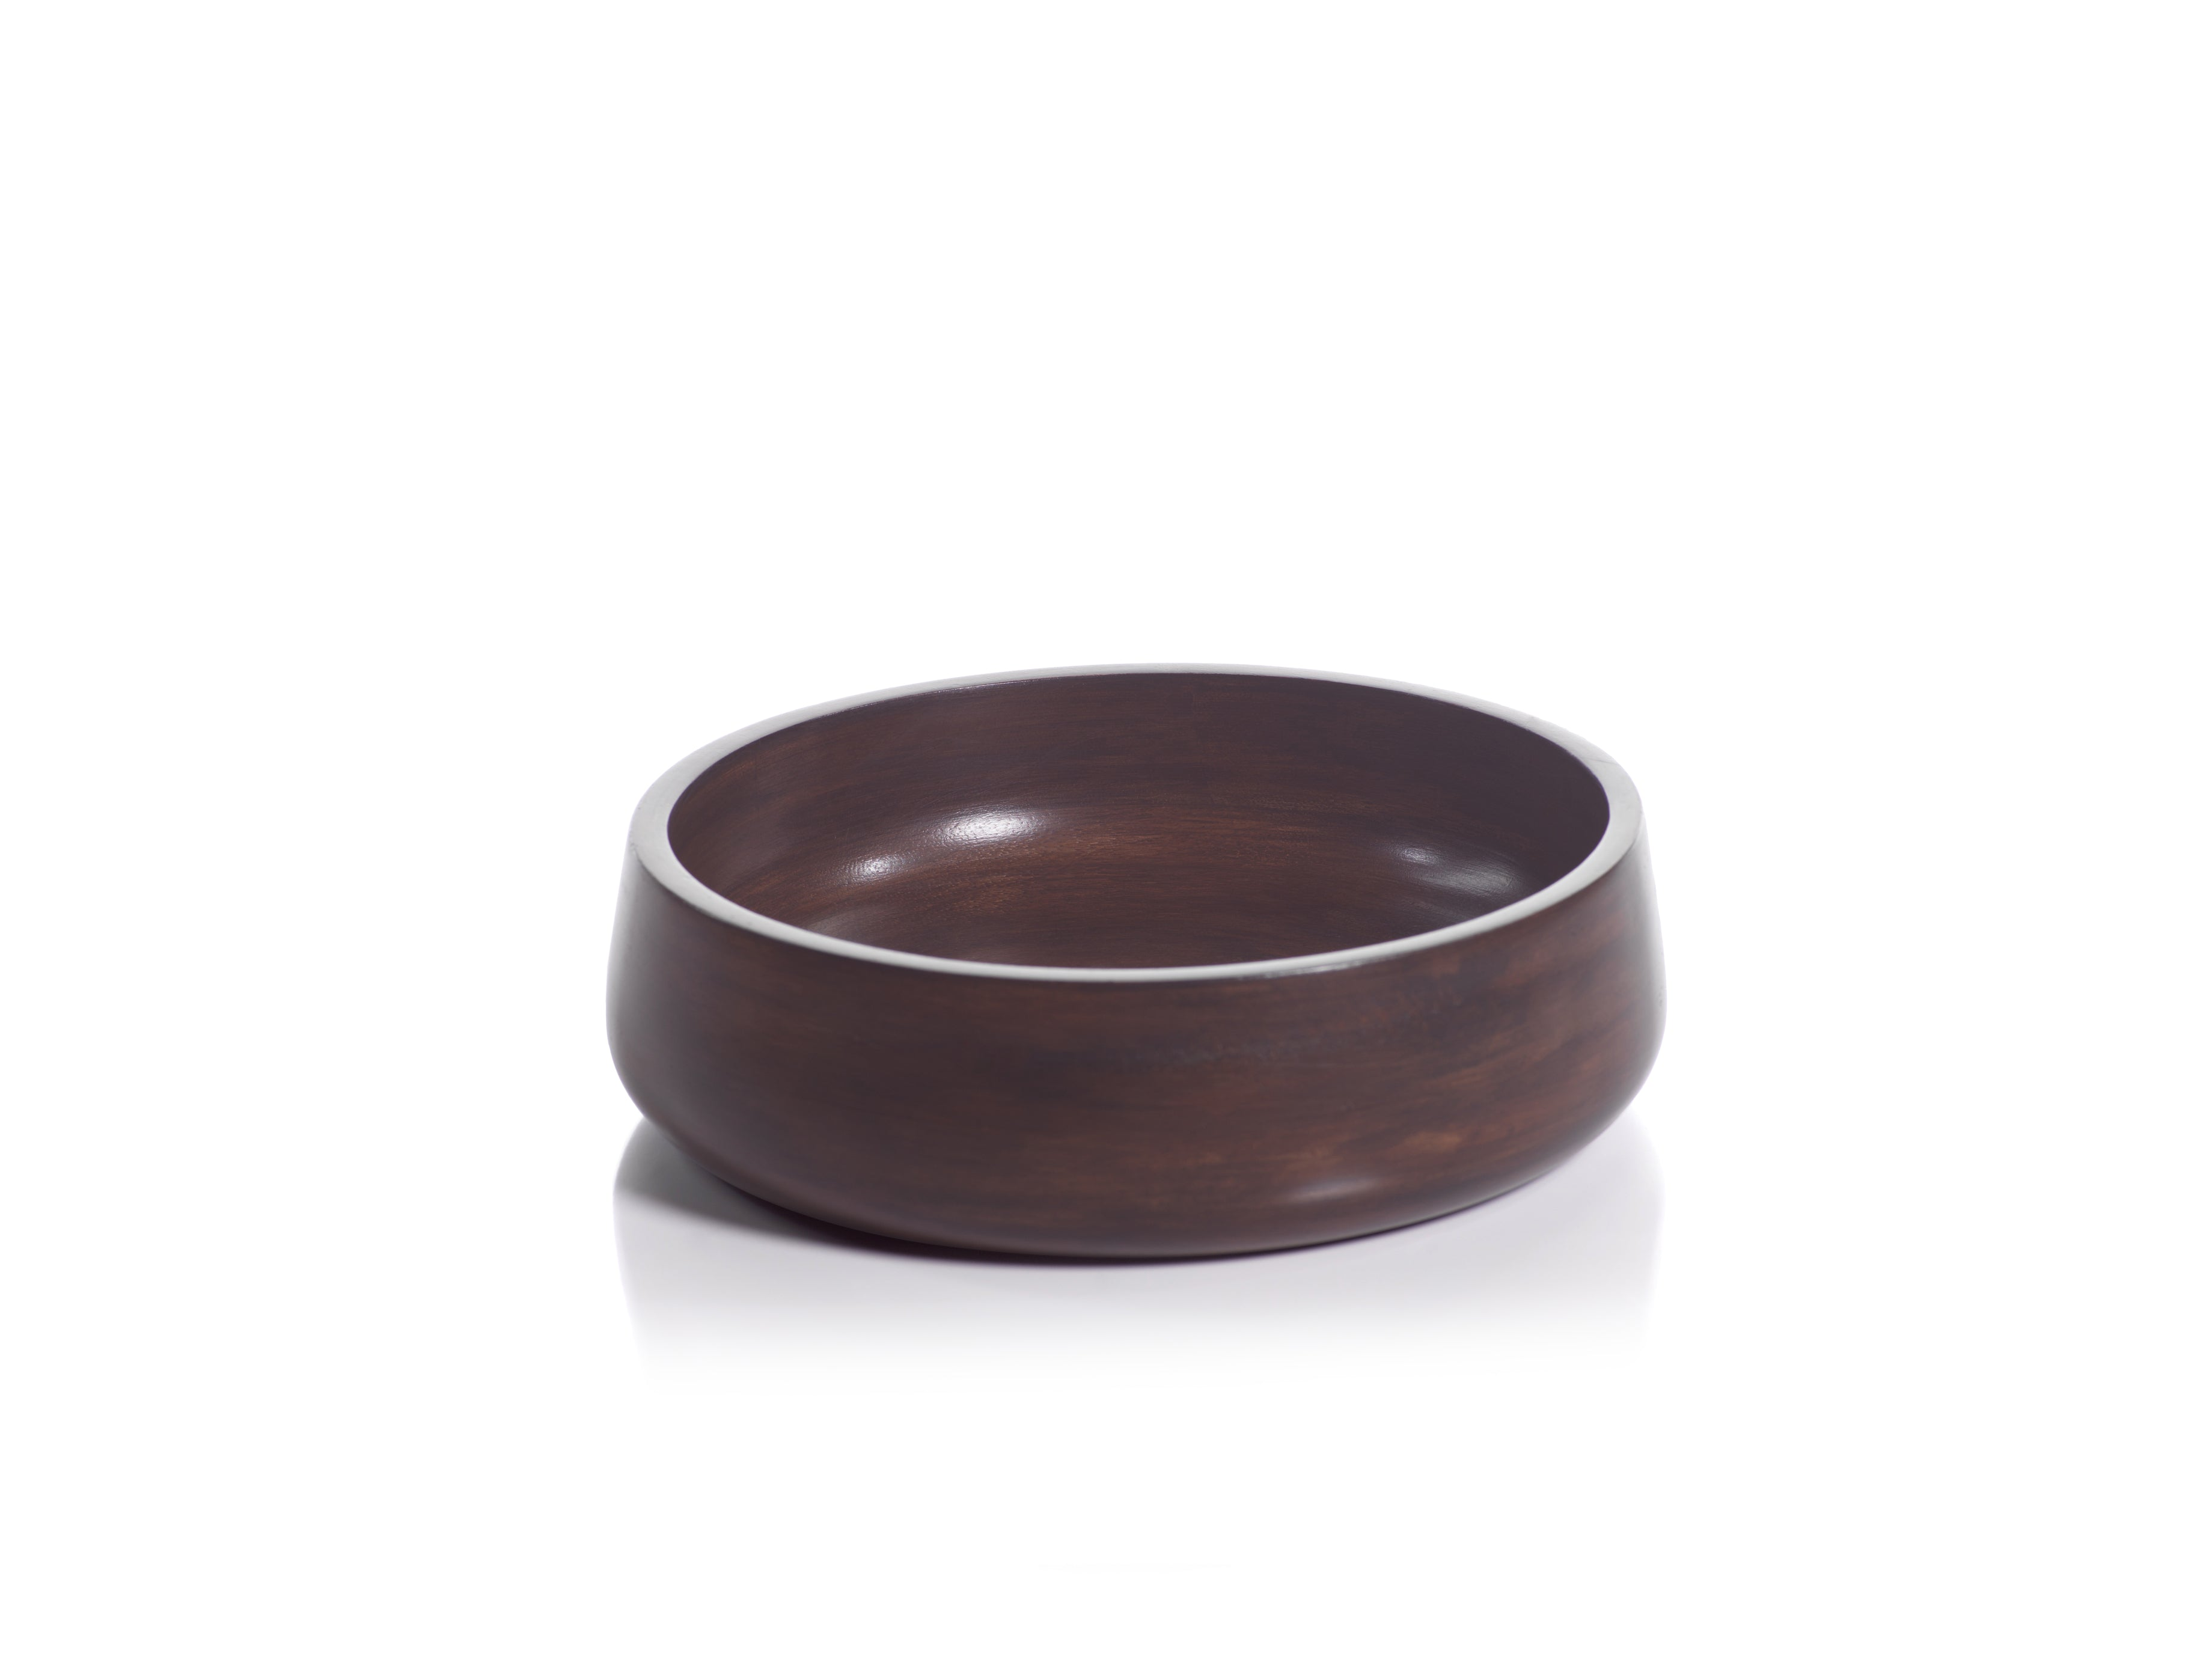 Bali Mango Wood Bowl - CARLYLE AVENUE